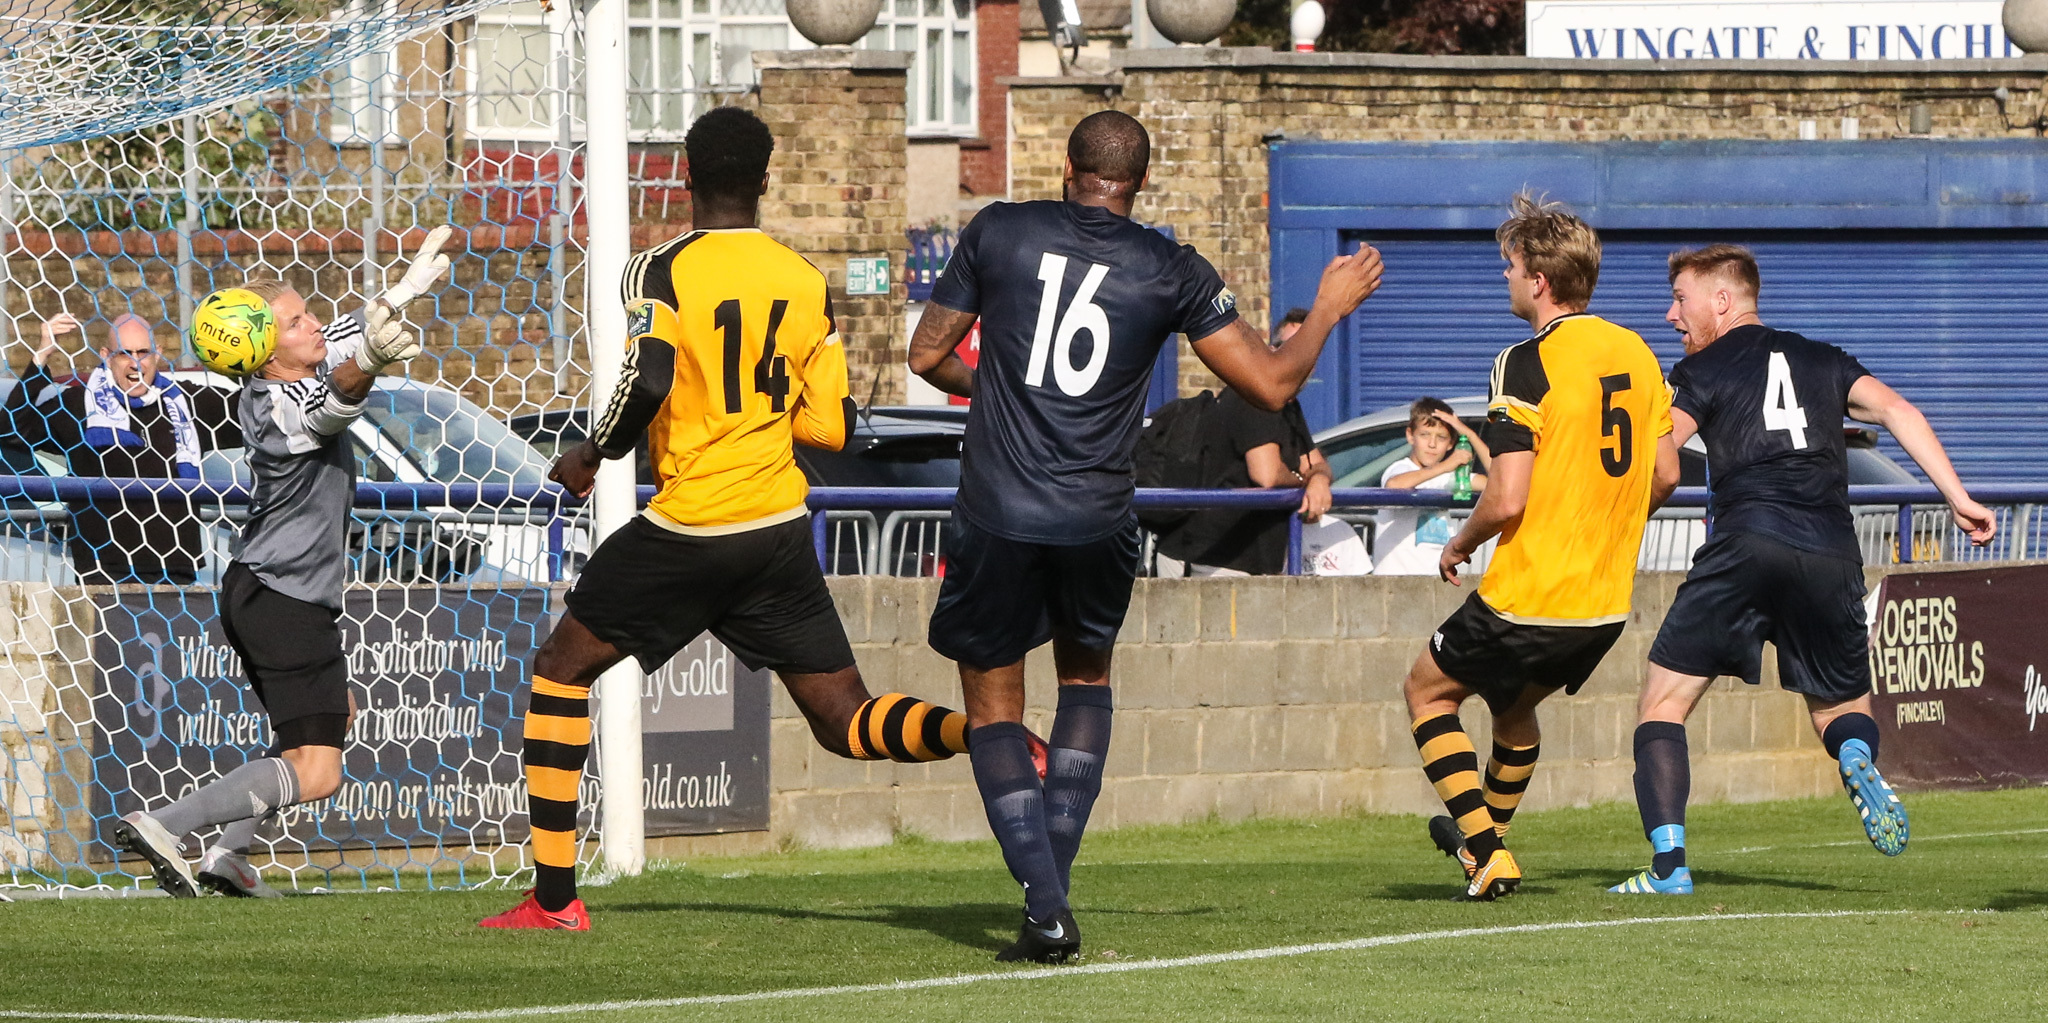 Marc Weatherstone heads in Wingate's second goal. Picture: Martin Addison